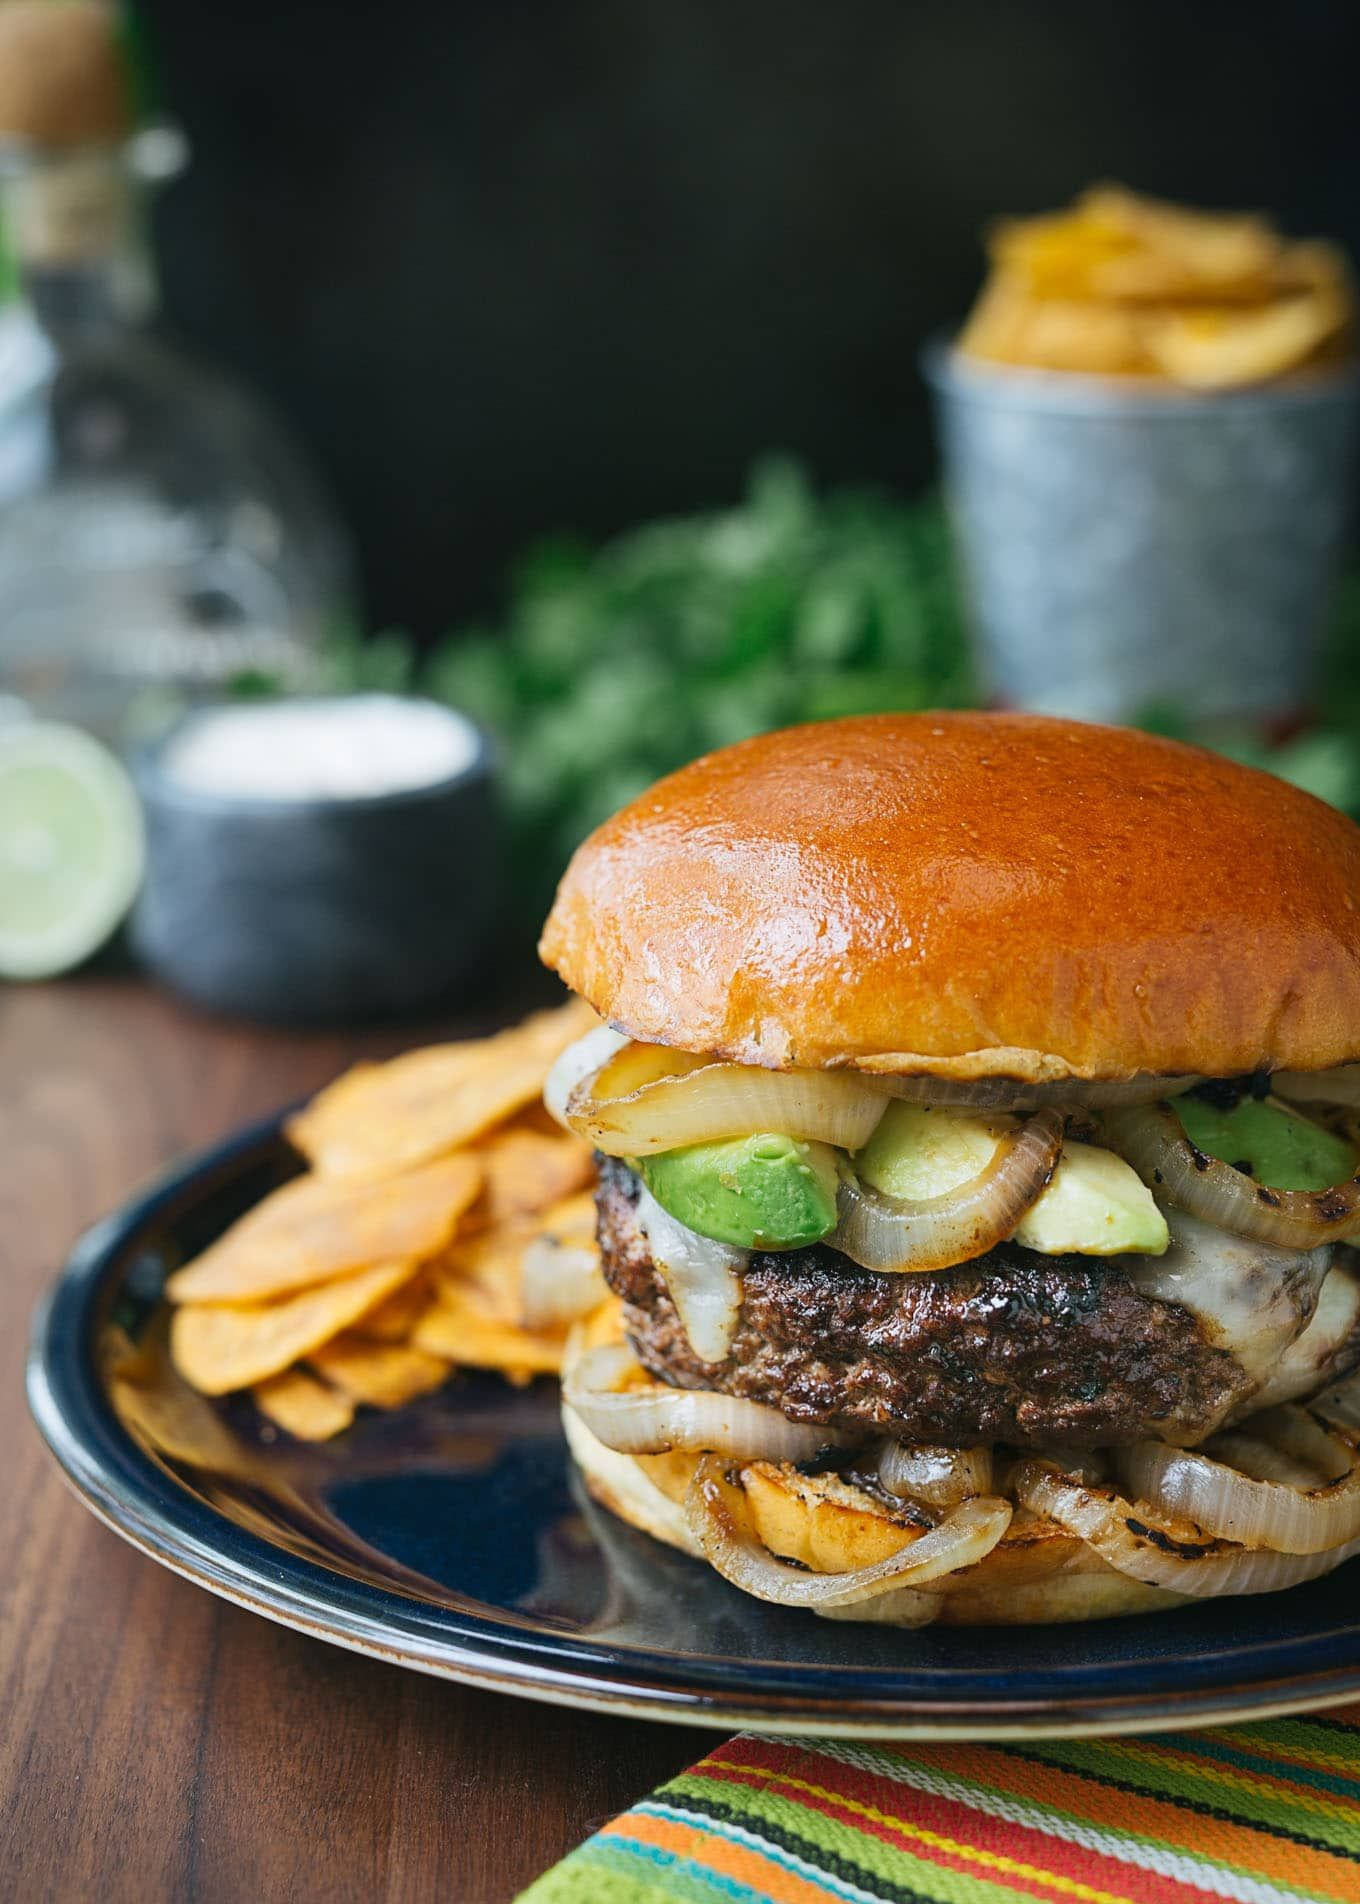 Mojo Beef Burgers With Tequila Lime Aioli Recipe Gourmet Burgers Beef Burgers Summer Grilling Recipes